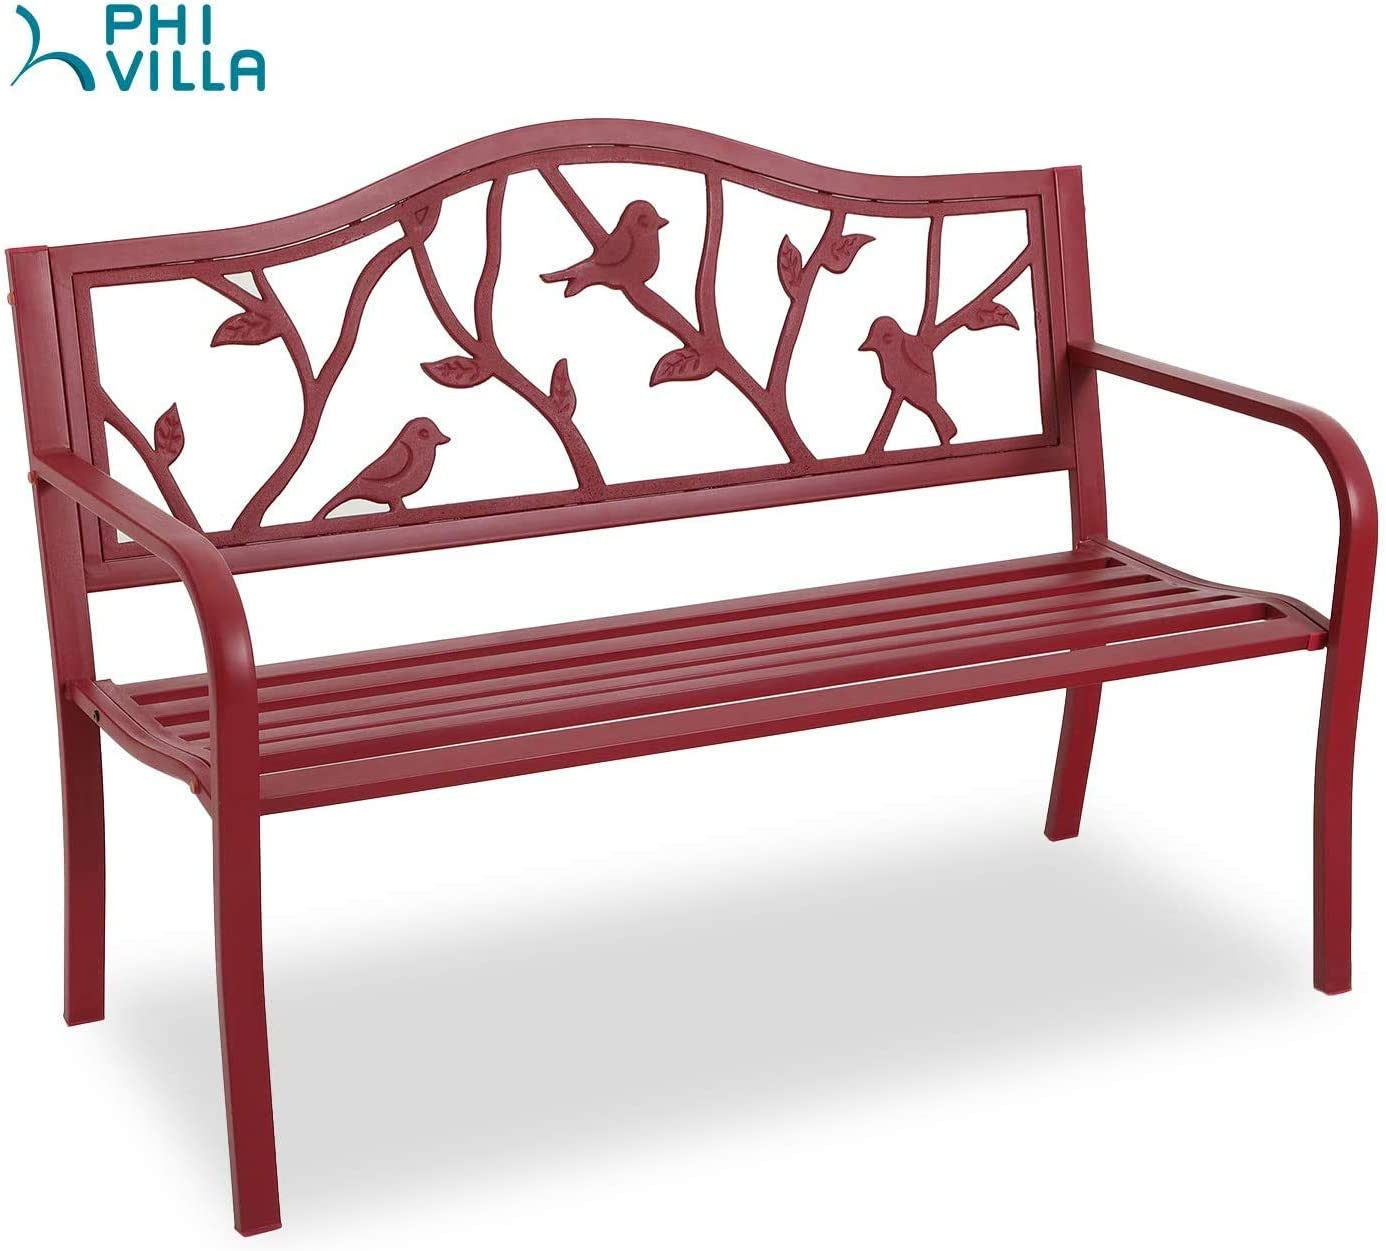 PHI VILLA Outdoor Garden Bench, 50 Steel Long Red Patio Bench for Yard, Lawn, Balcony, Porch, Red Bird Modern Bench with Backrest and Armrests